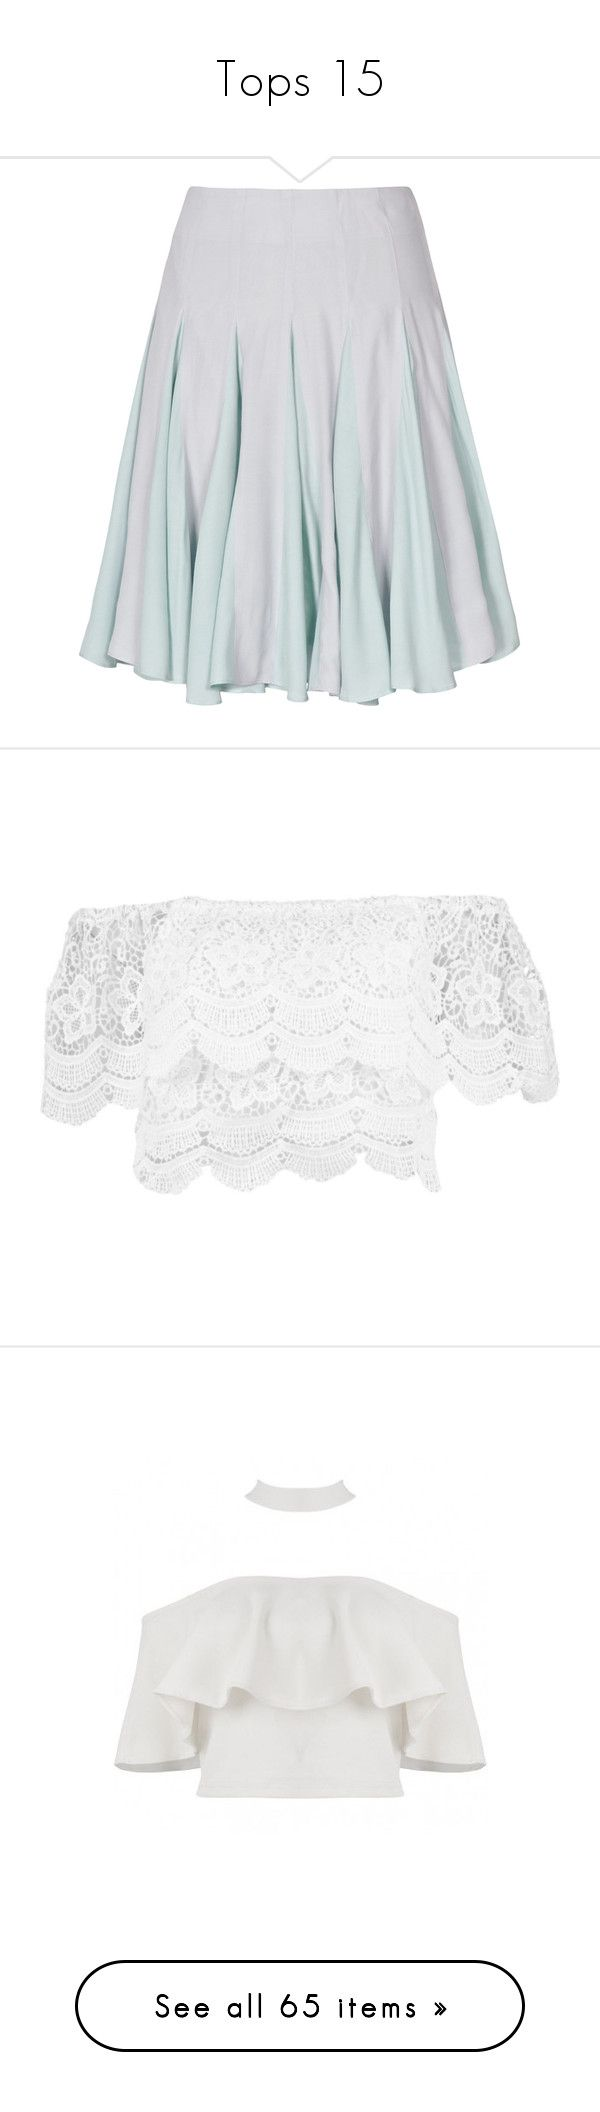 """""""Tops 15"""" by erin-ohlsson ❤ liked on Polyvore featuring skirts, bottoms, ice blue, reiss skirts, reiss, blue skirt, knee length pleated skirt, pleated skater skirt, tops and crop tops"""